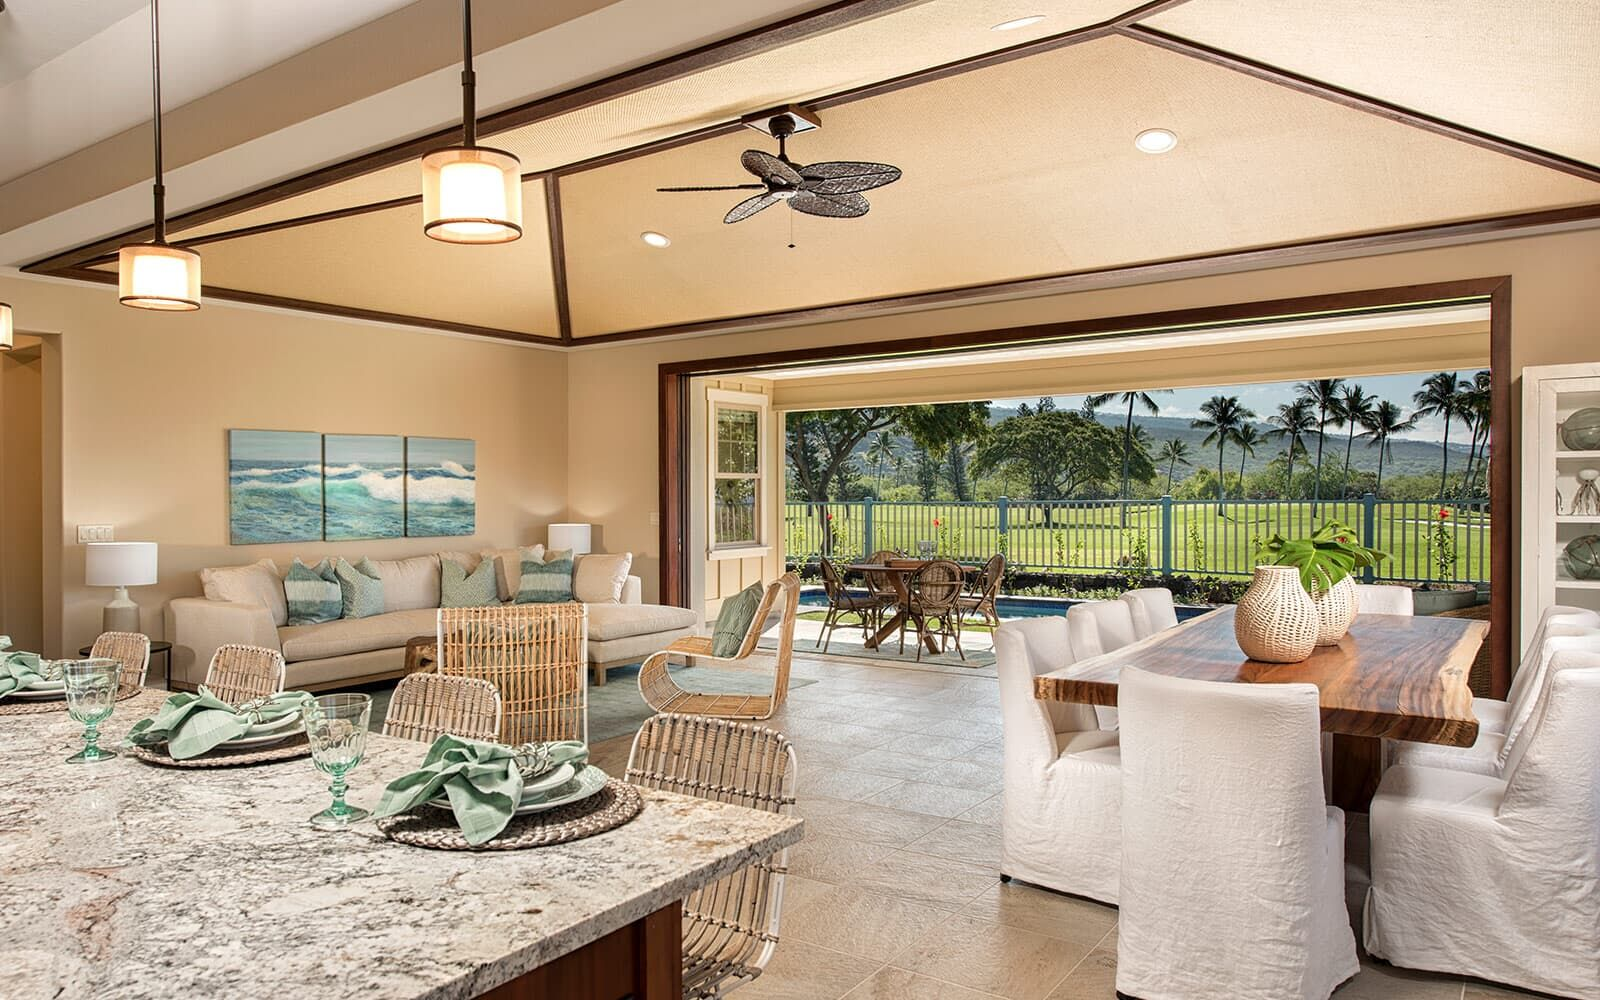 Living Area featured in the Ehukai Plan 3 By Brookfield Residential in Hawaii Island, HI